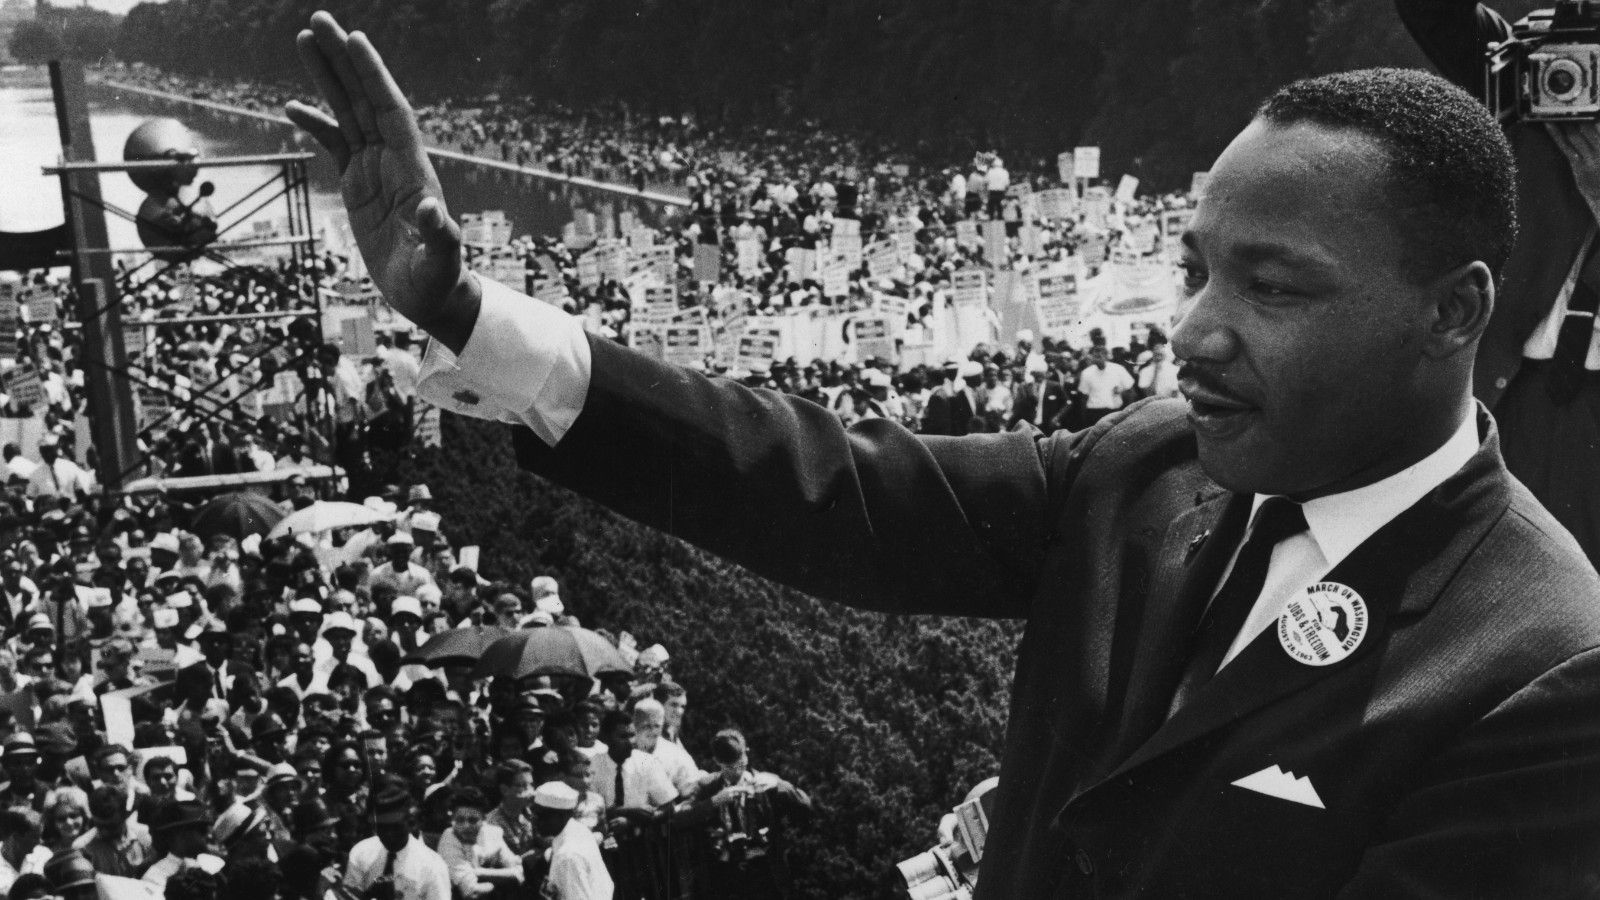 By the numbers: Martin Luther King Jr. Day - CNN